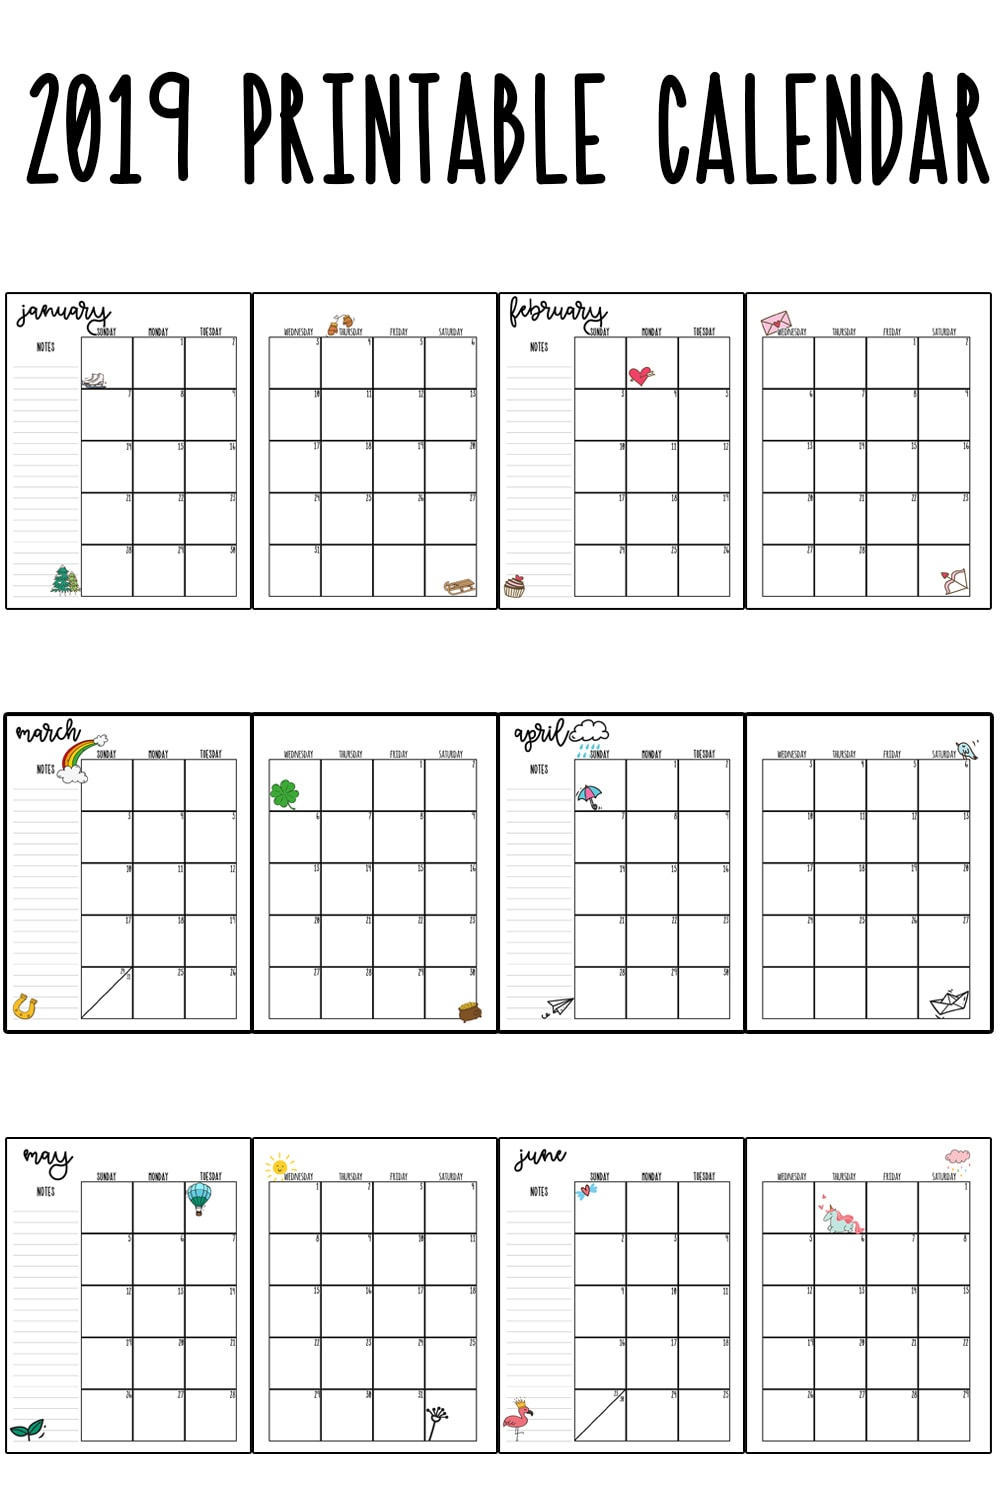 2019 Printable Calendar regarding Blank Printable Mini Calendar